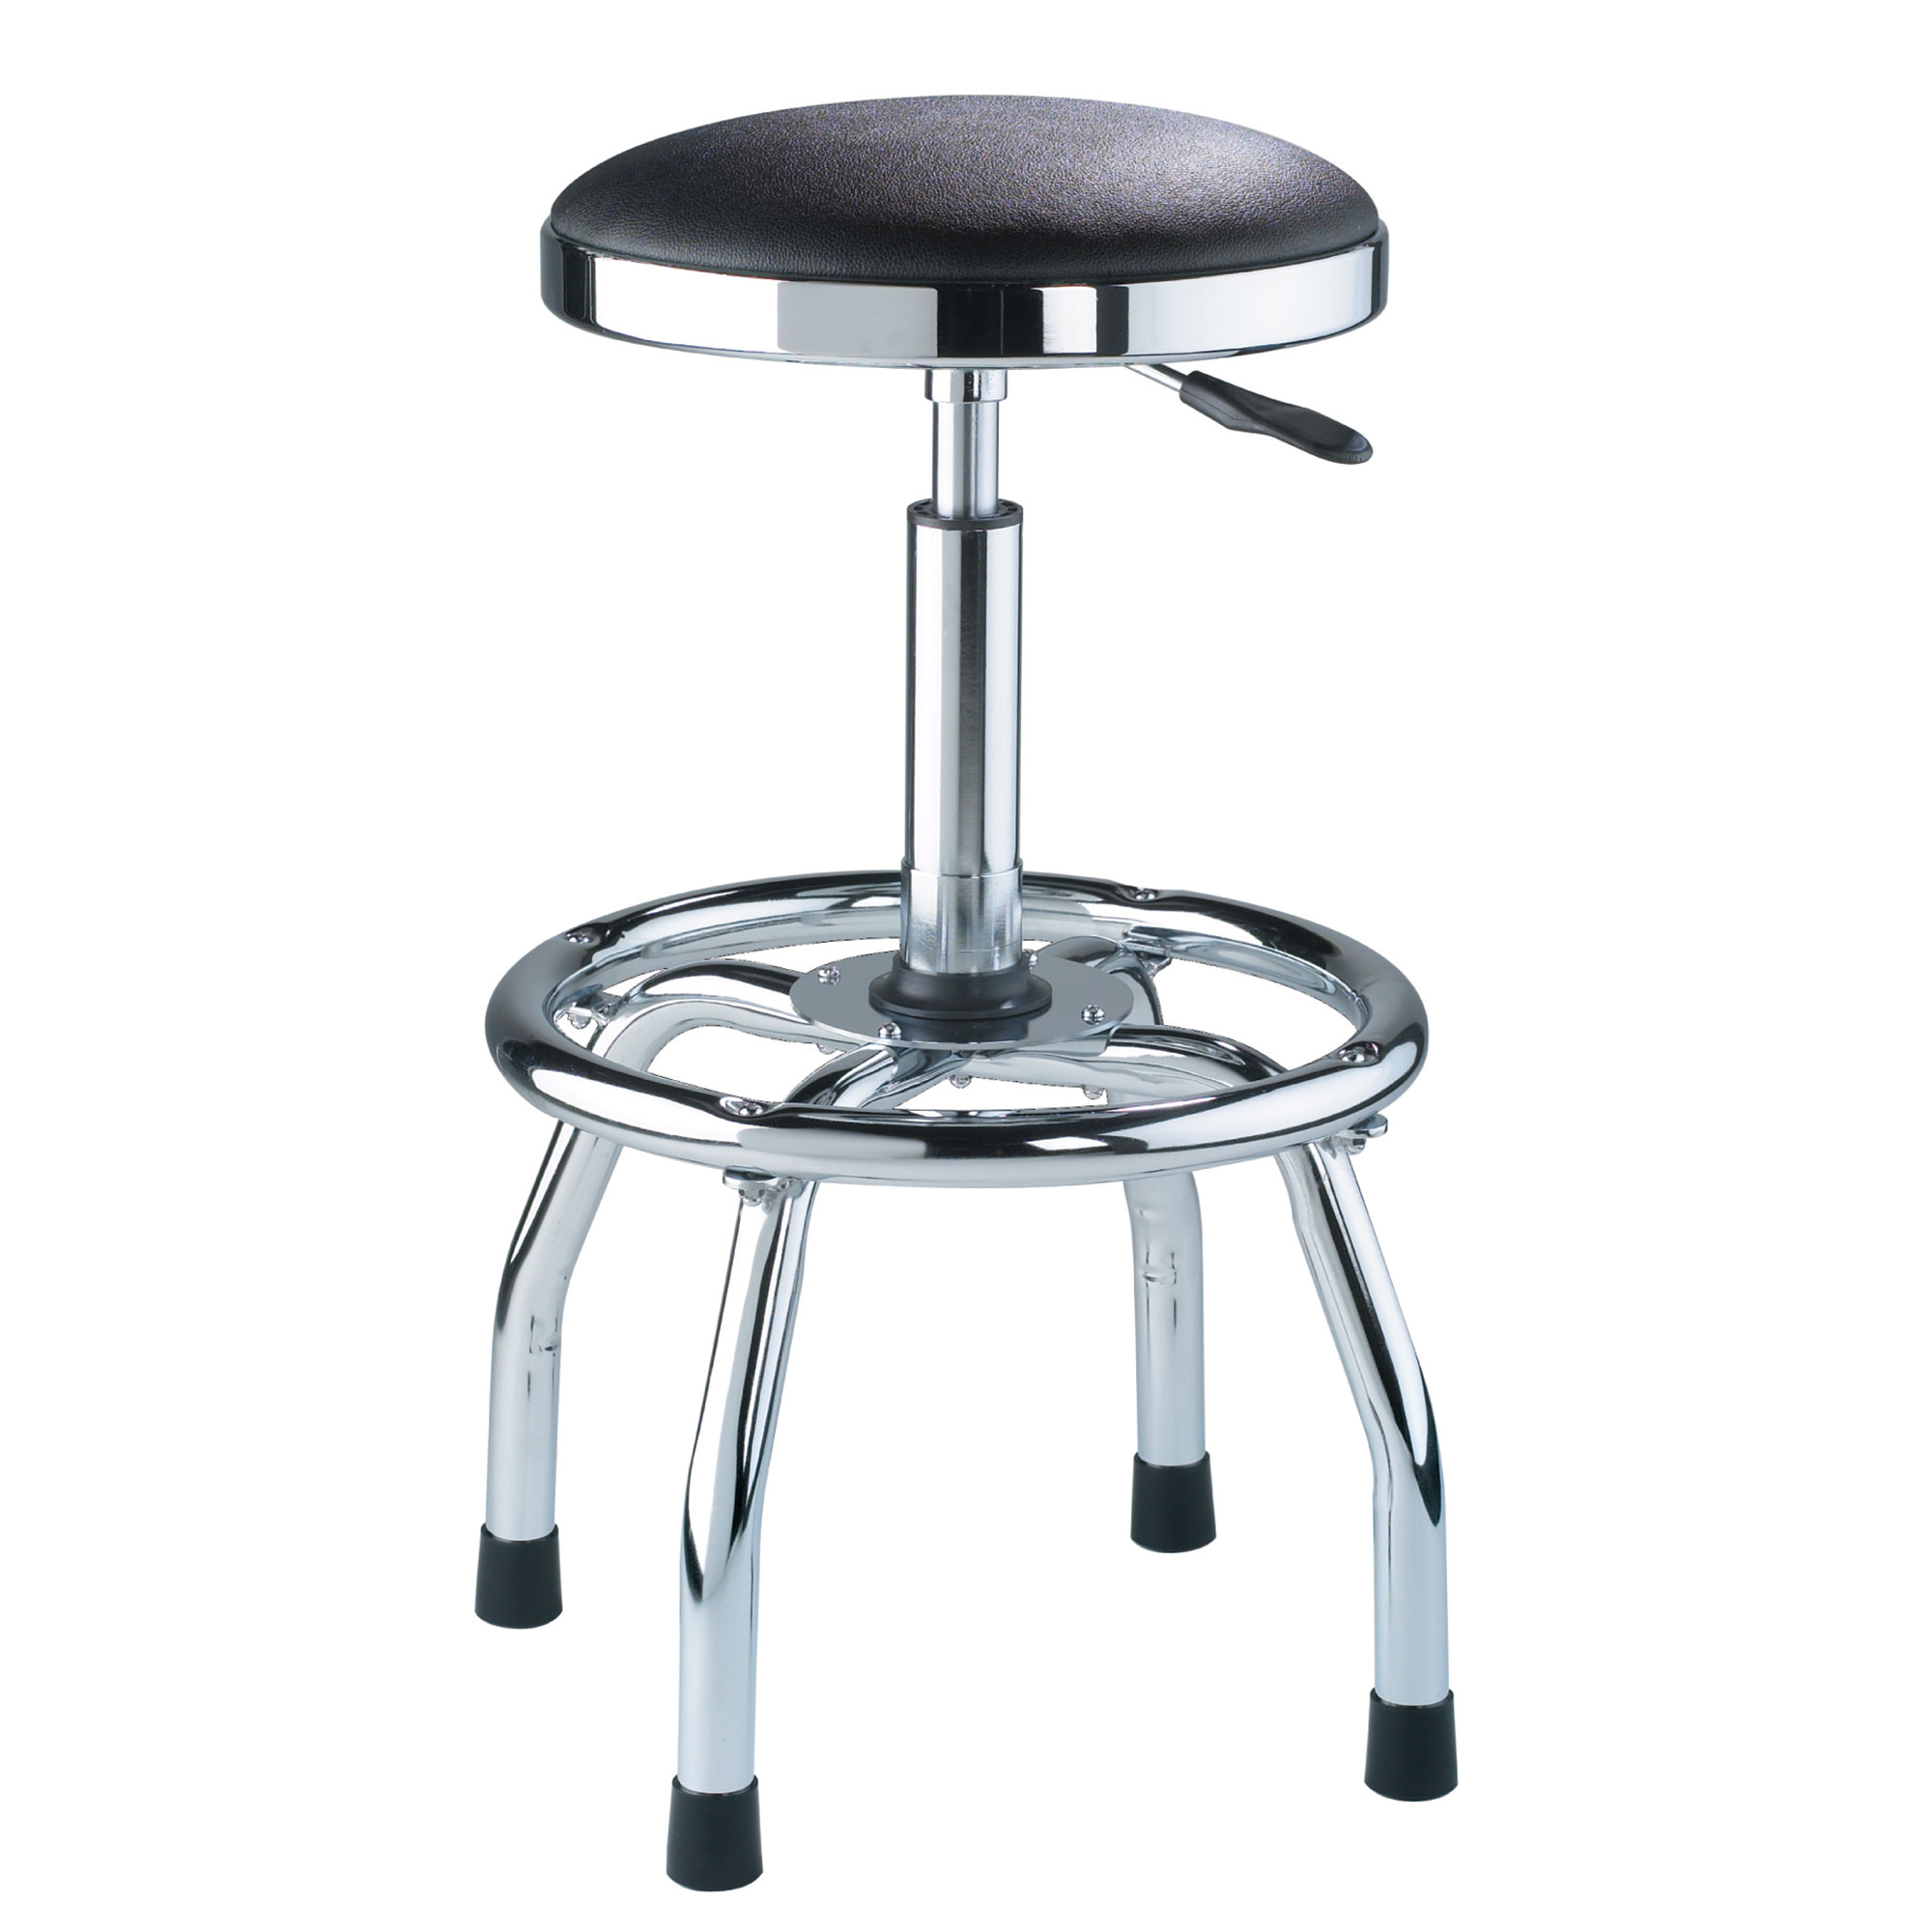 615268618821 Upc Torin Big Red Pneumatic Swivel Stool